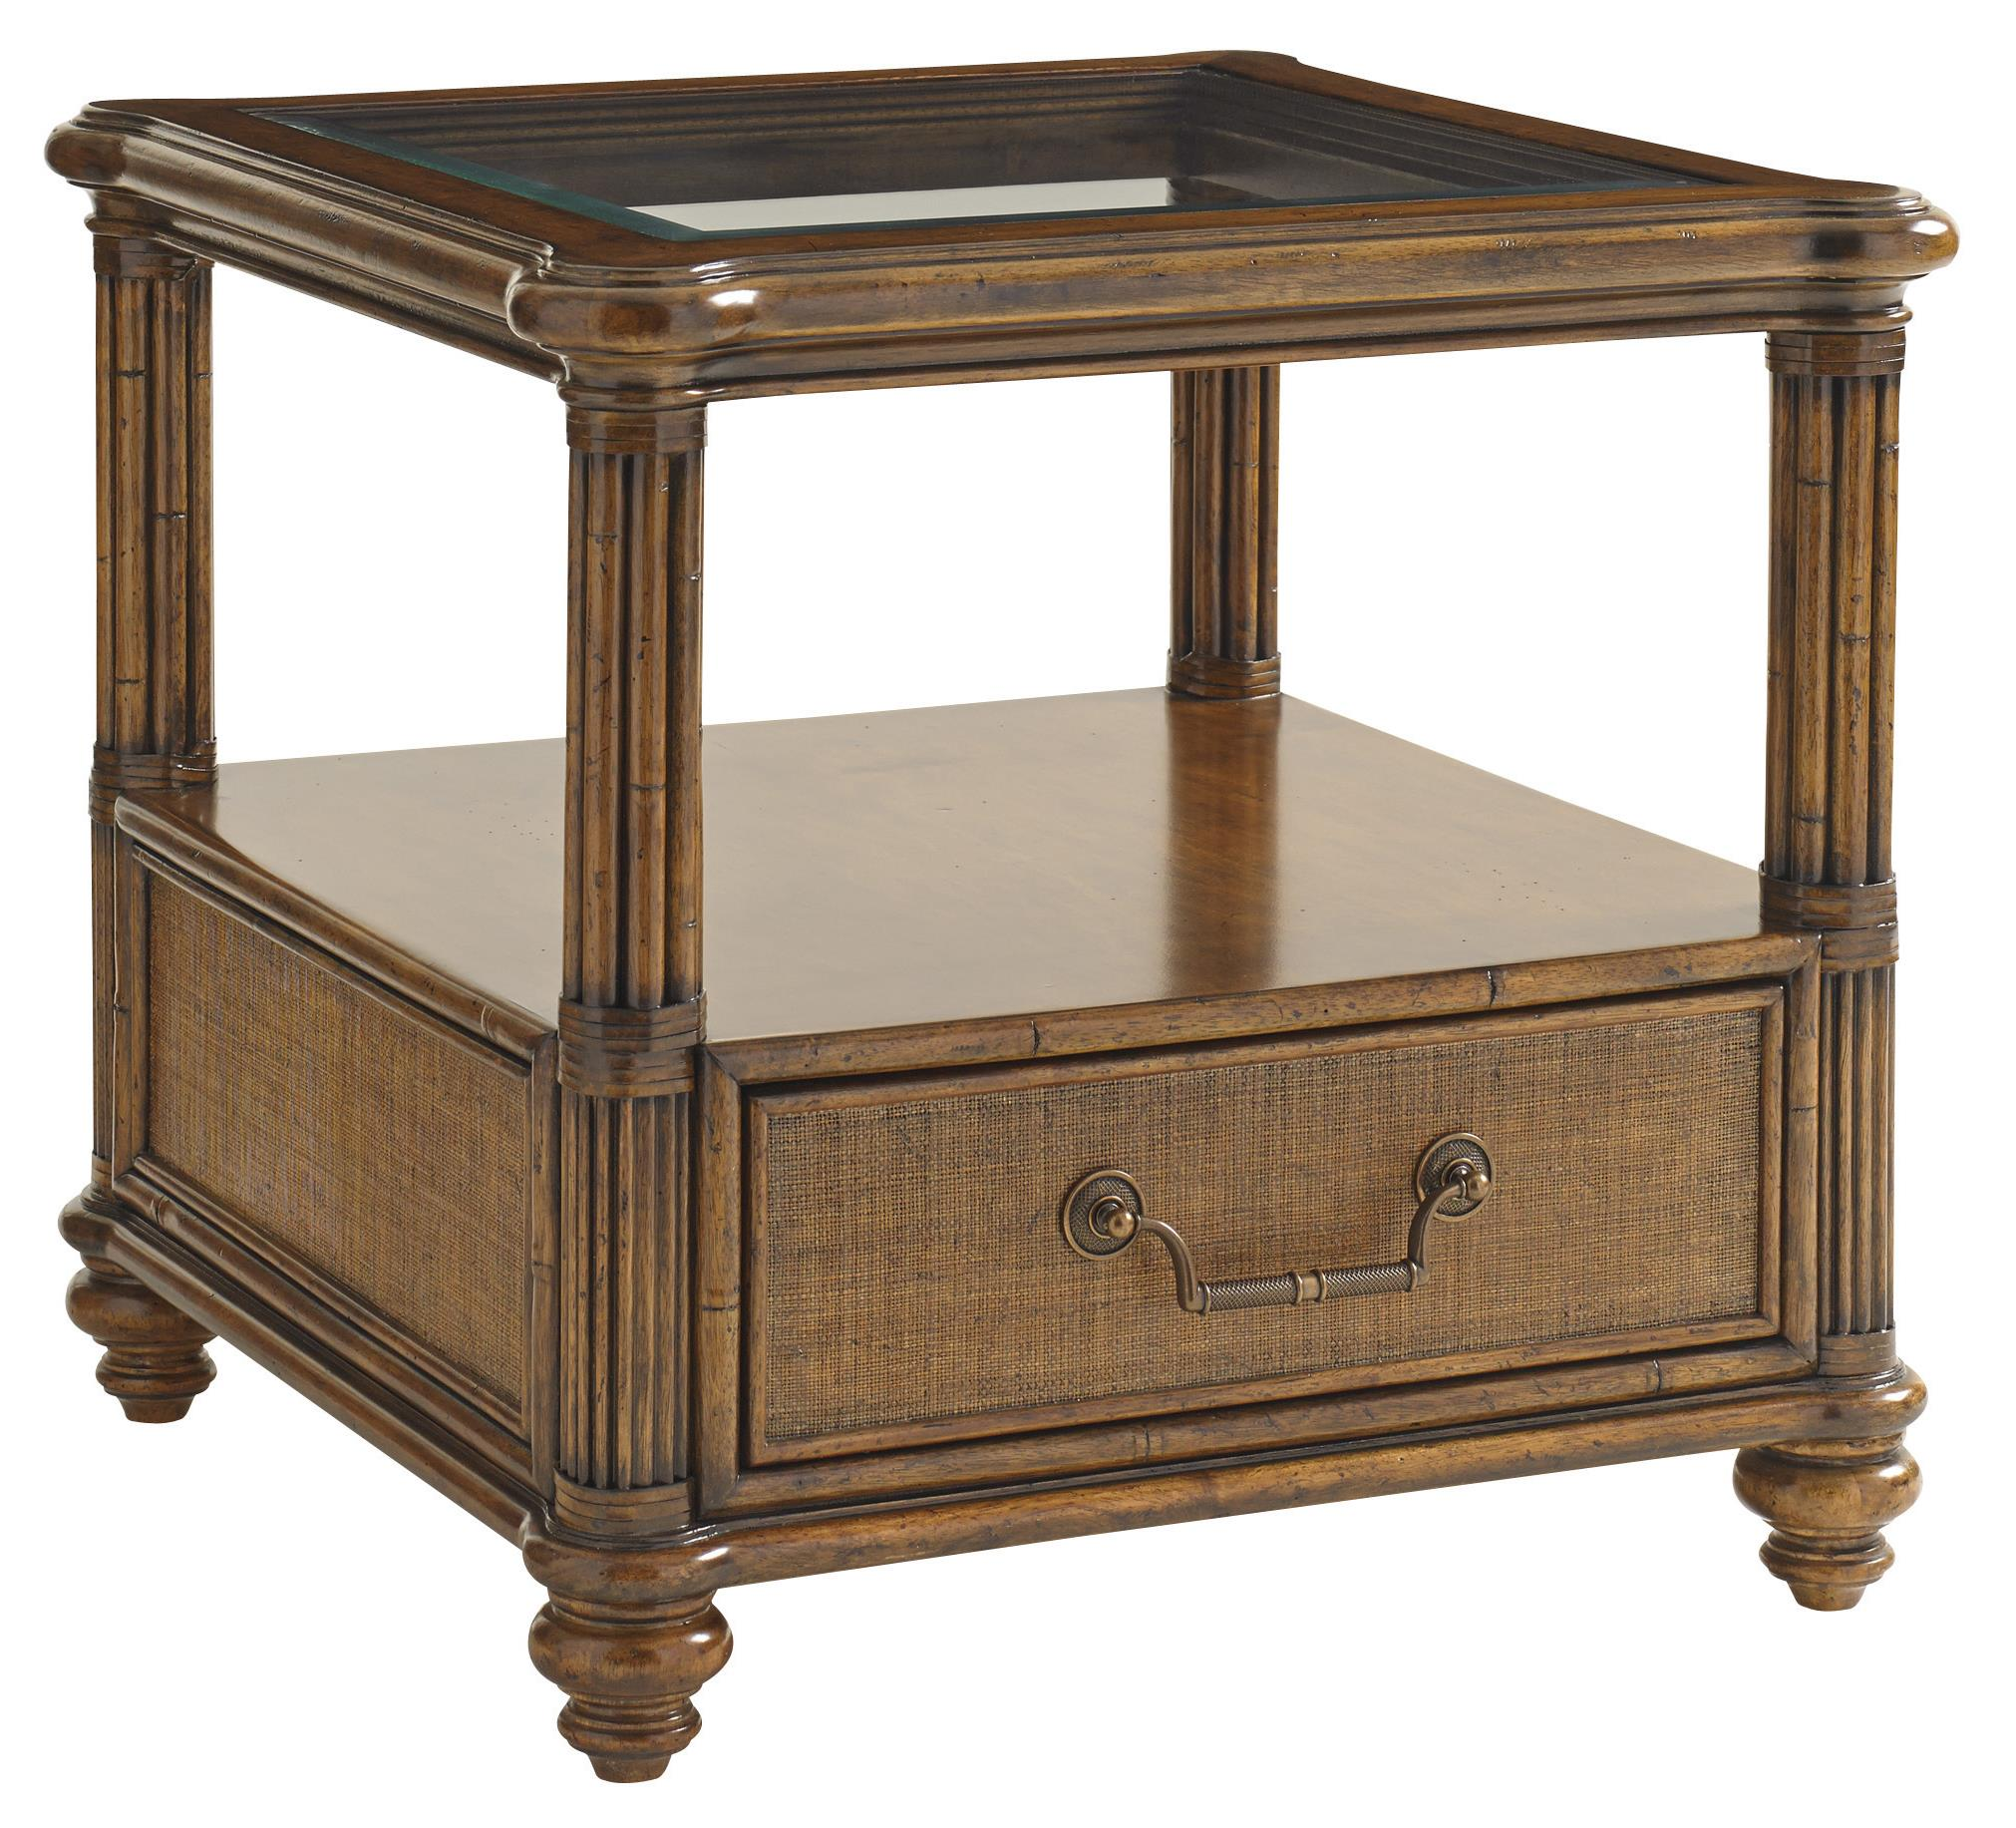 Bali Hai Bimini Square End Table by Tommy Bahama Home at Baer's Furniture